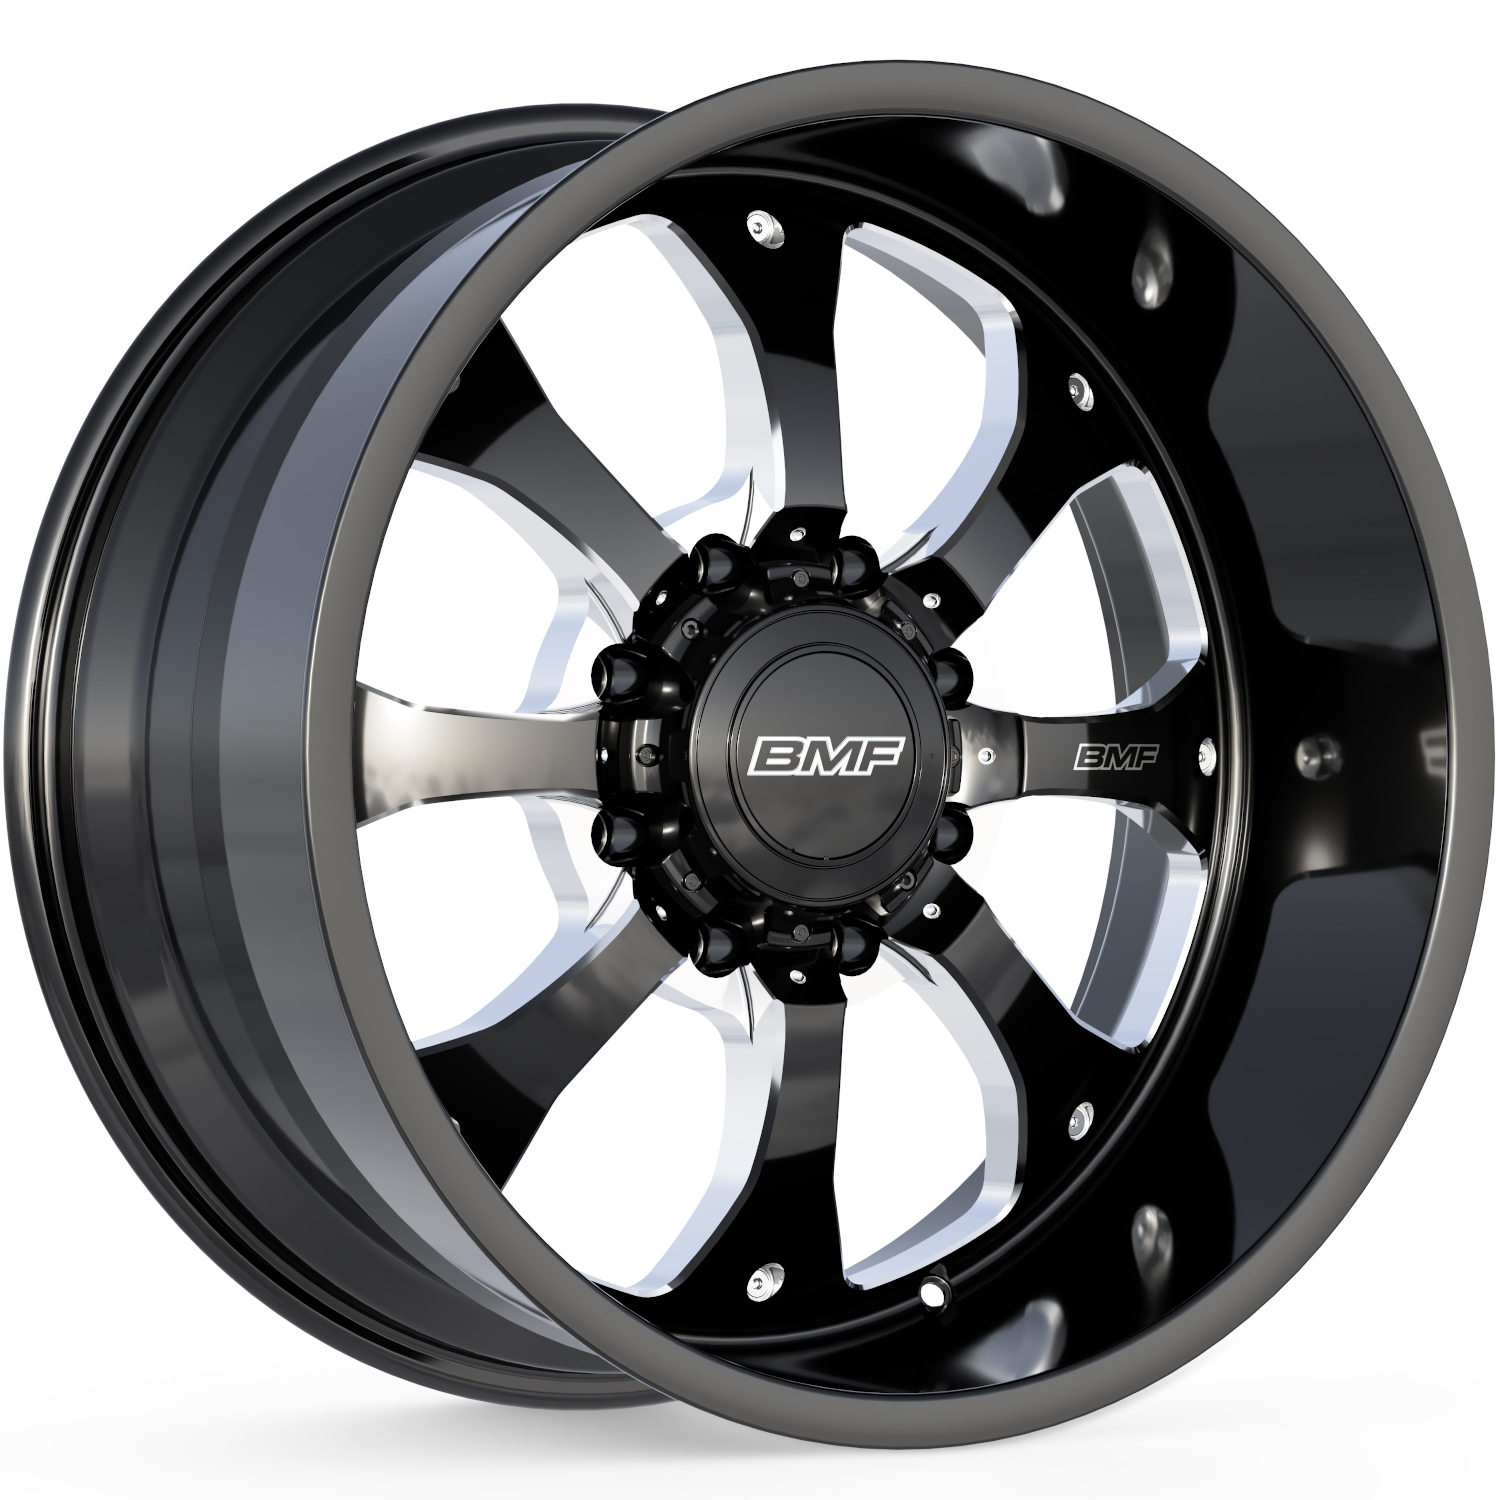 BMF Payback 22x10.5 -24